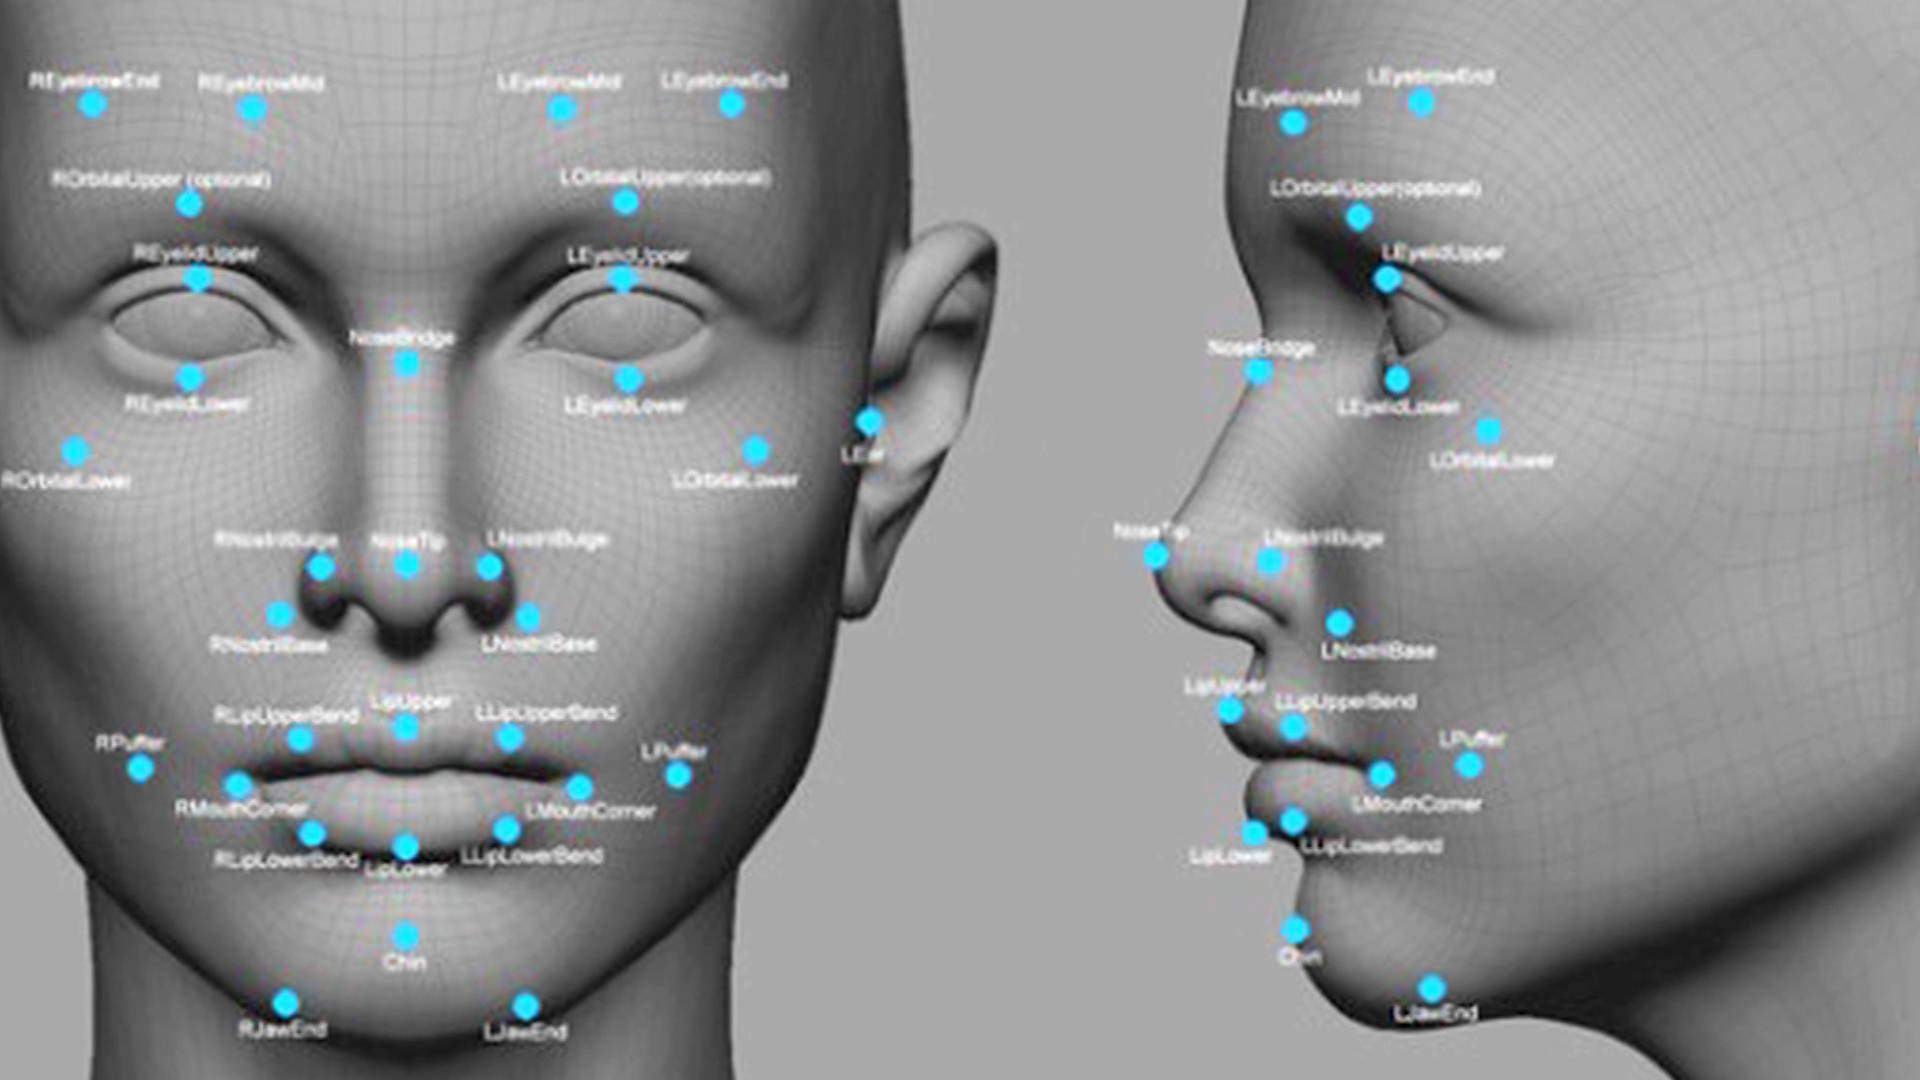 75 Countries Using Artificial Intelligence for Mass Surveillance